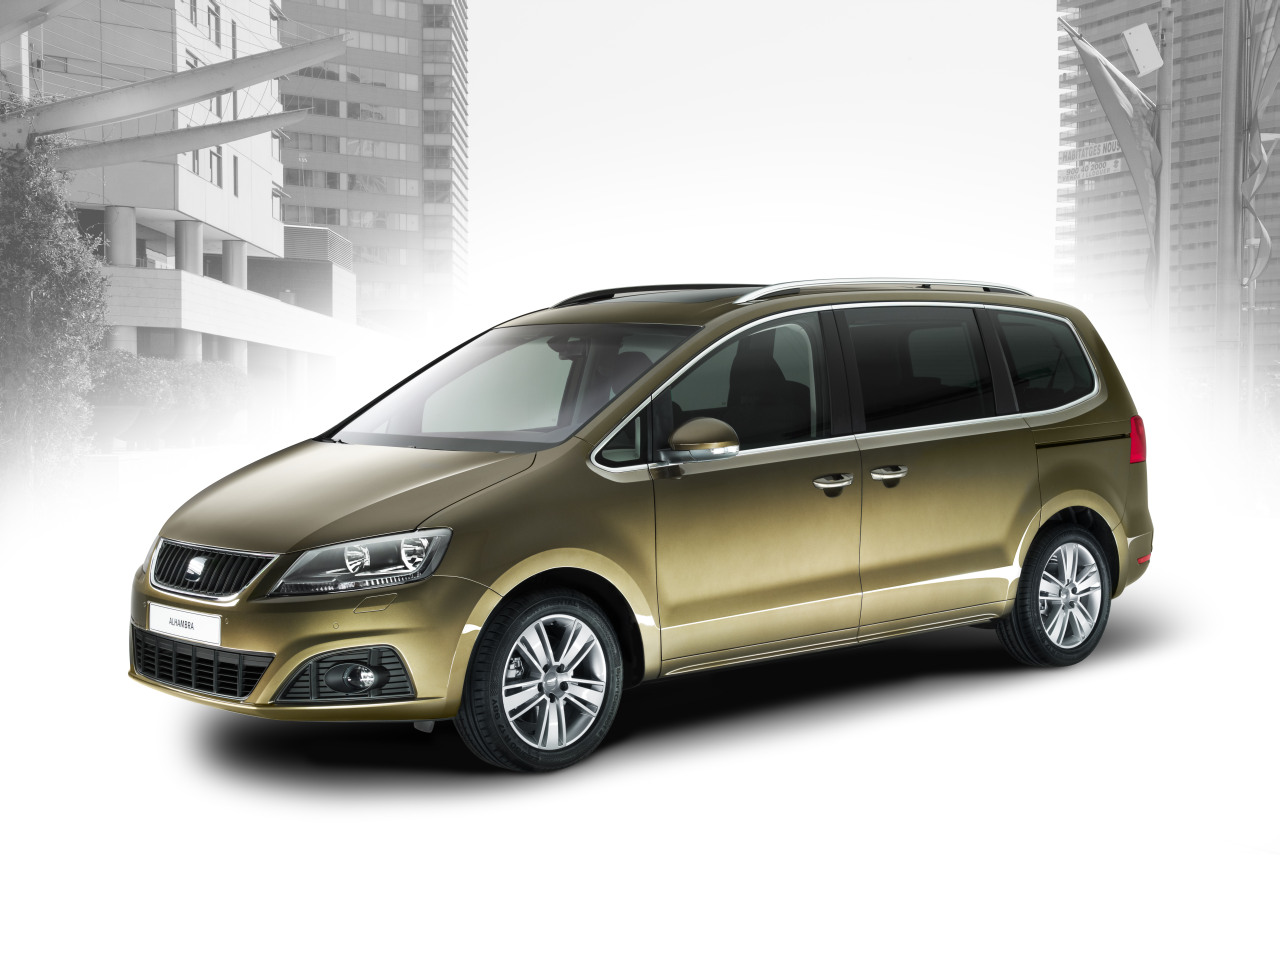 Emocionalvolante Blogspot Com Video Seat Alhambra 2010 HD Wallpapers Download free images and photos [musssic.tk]